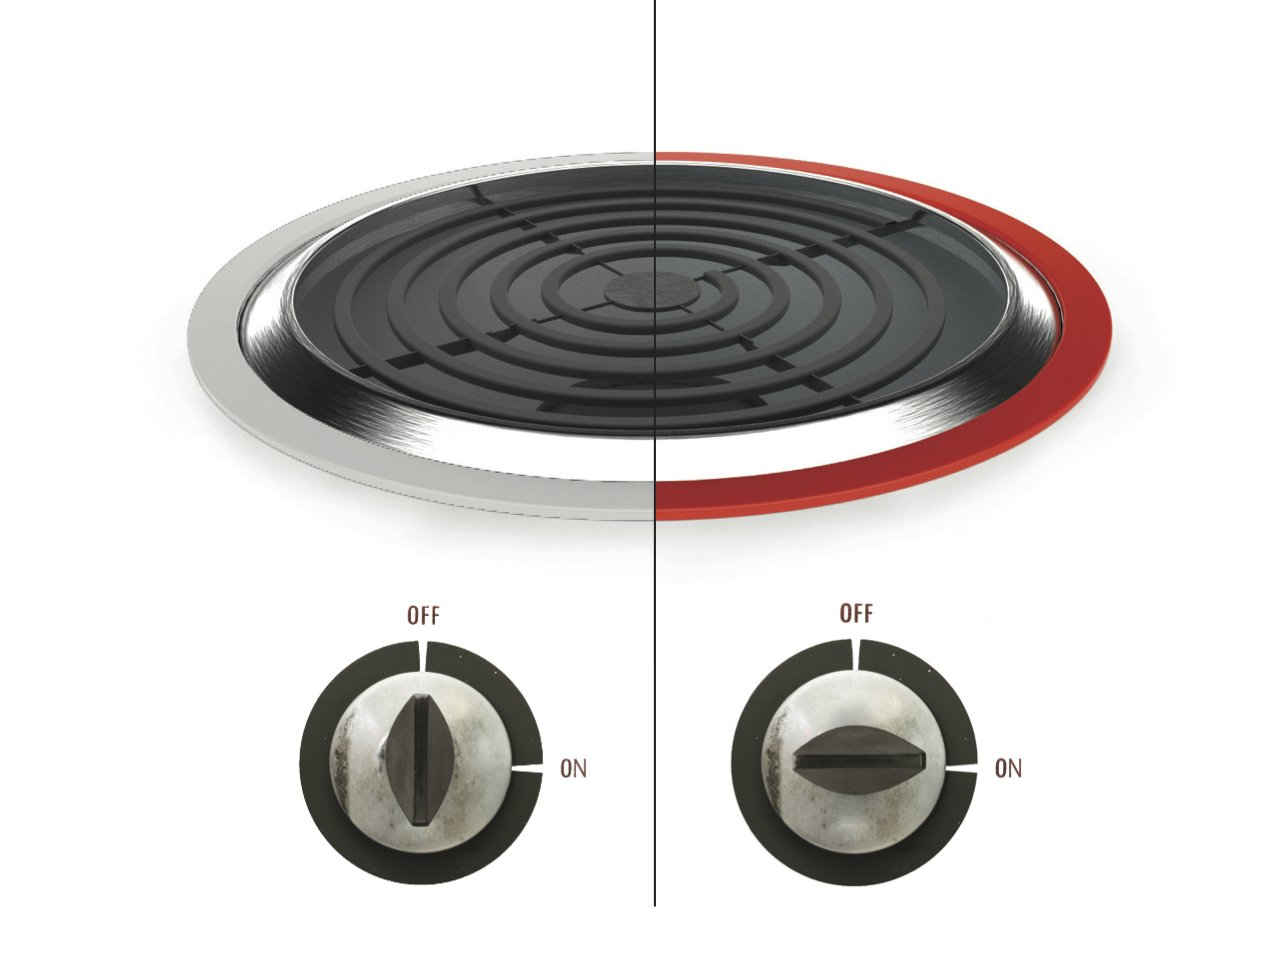 """When placed around an electric stove burner, """"ThermoRing""""—designed by San Francisco State University student Kayvan Mojtahedzadeh—indicates if it is too hot to touch, a common safety issue for individuals experiencing dementia.  Photo 5 of 5 in Designs for patients with dementia"""